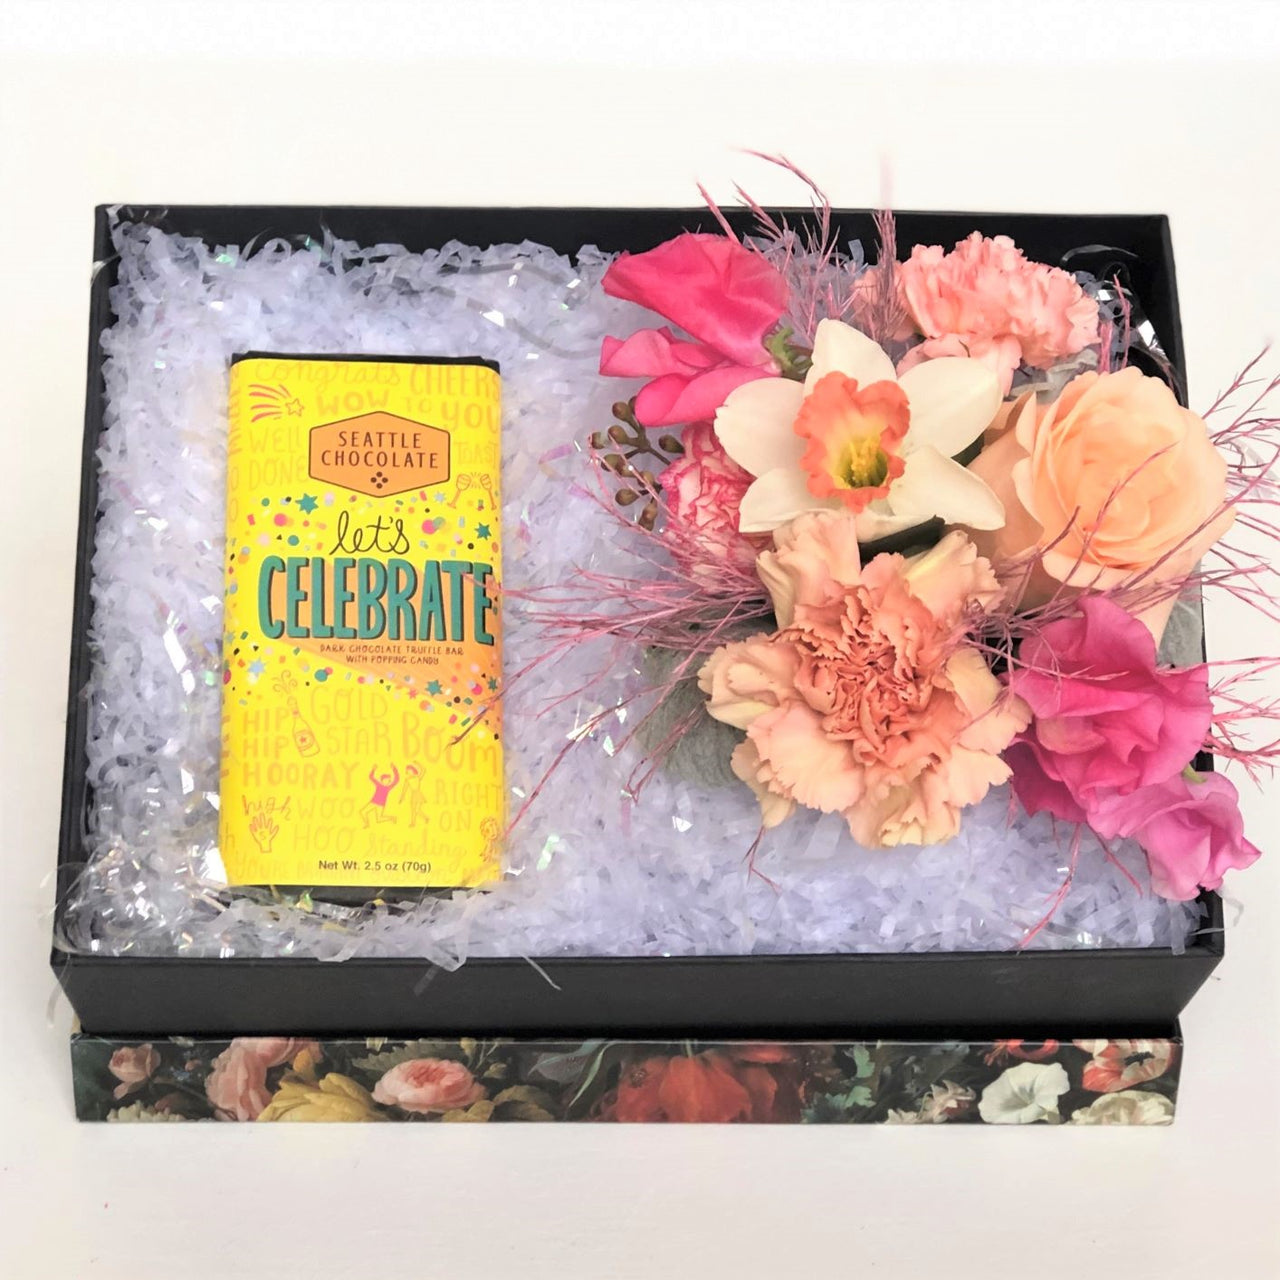 A beautiful petite floral gift box black box with a floral printed lid comes complete with gorgeous fresh blooms and a Seattle Chocolates chocolate truffle bar